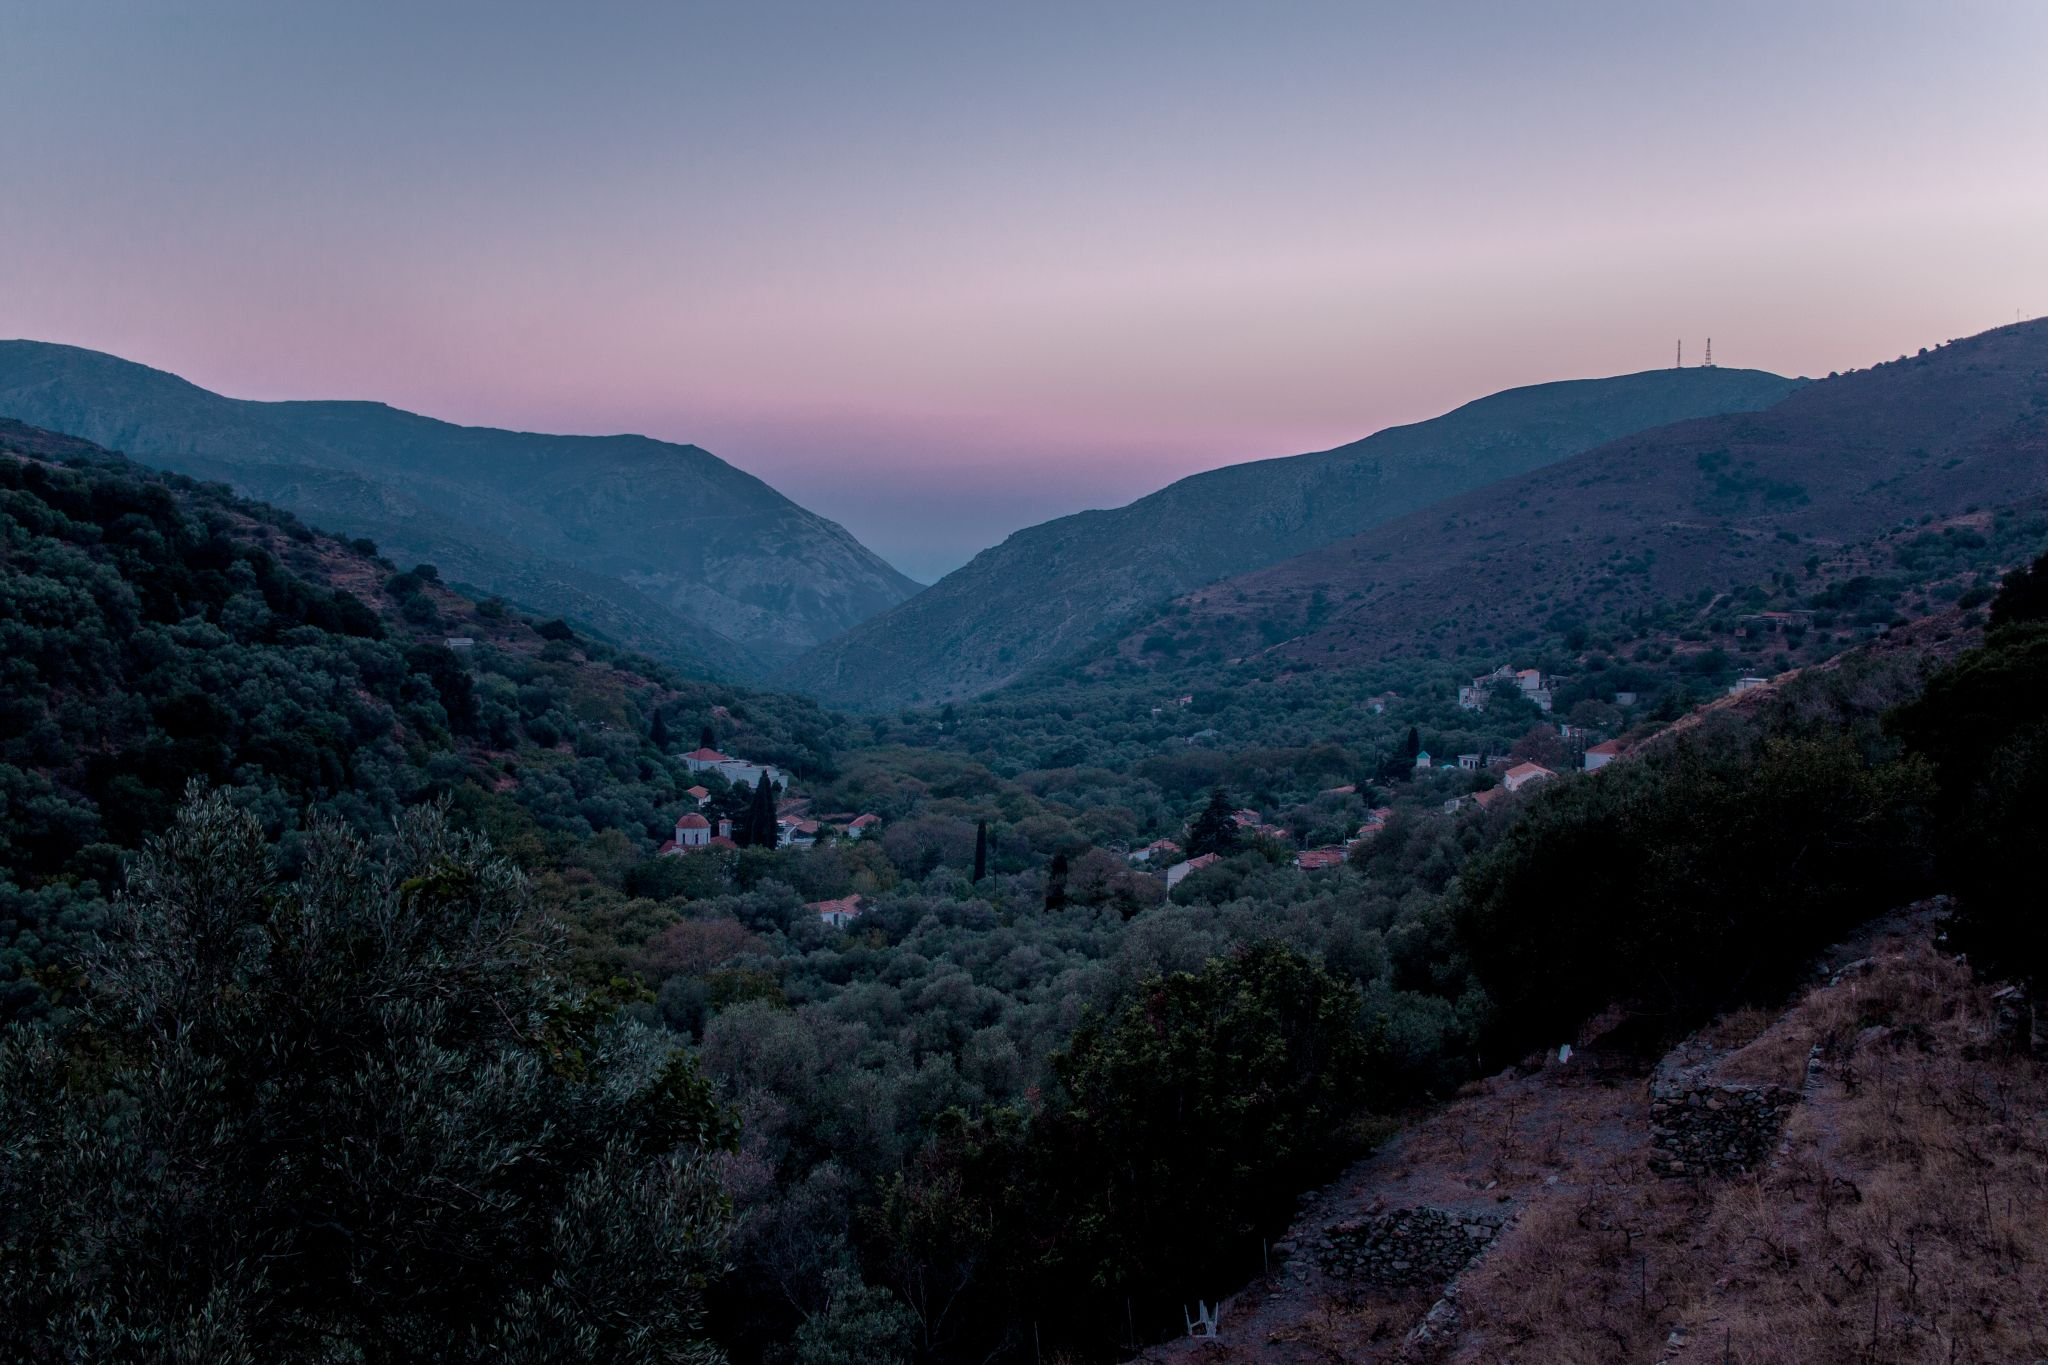 Crete Travel Guide Sunset in the mountains